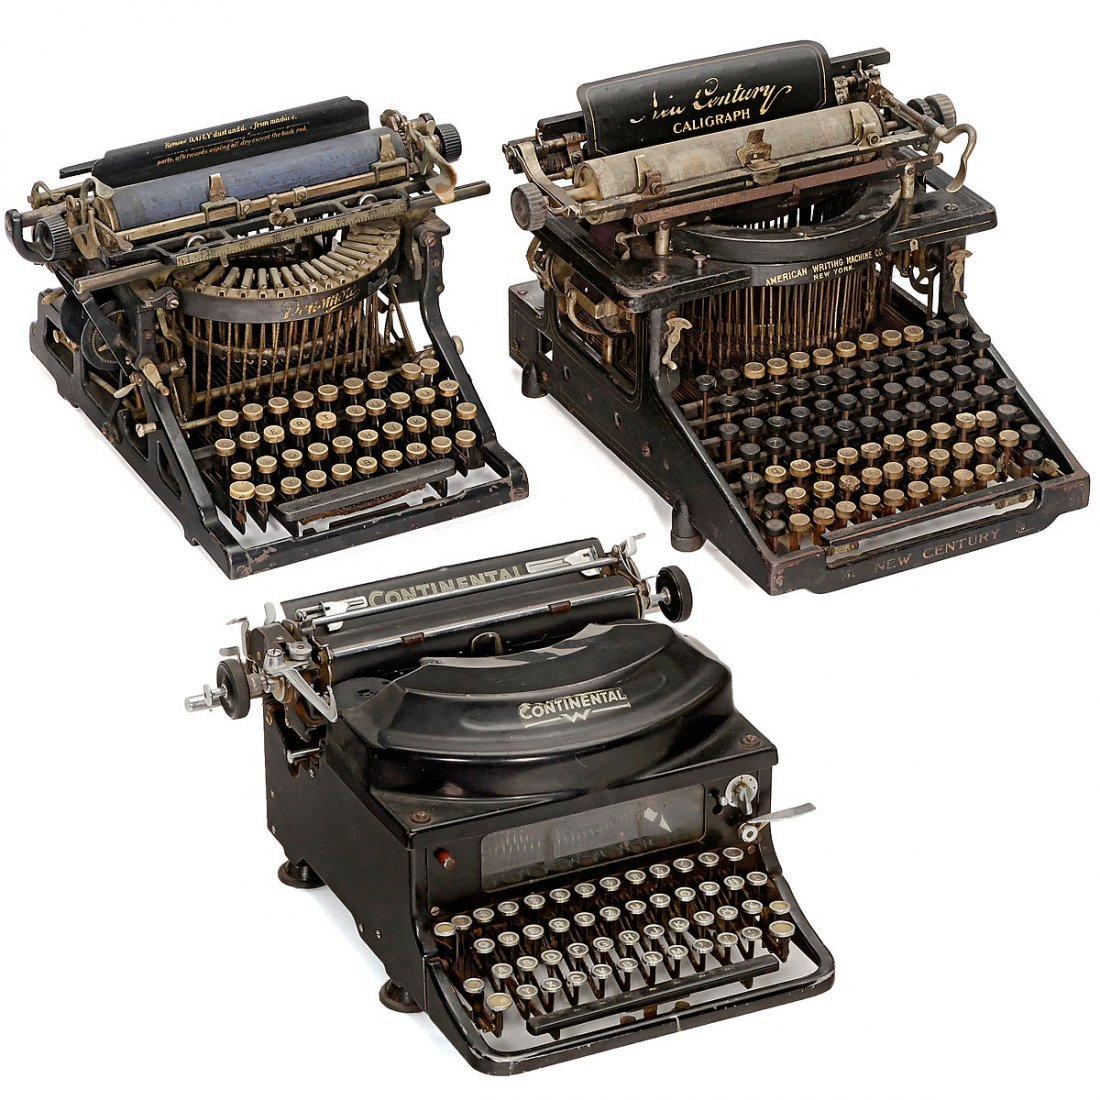 3 Typewriters